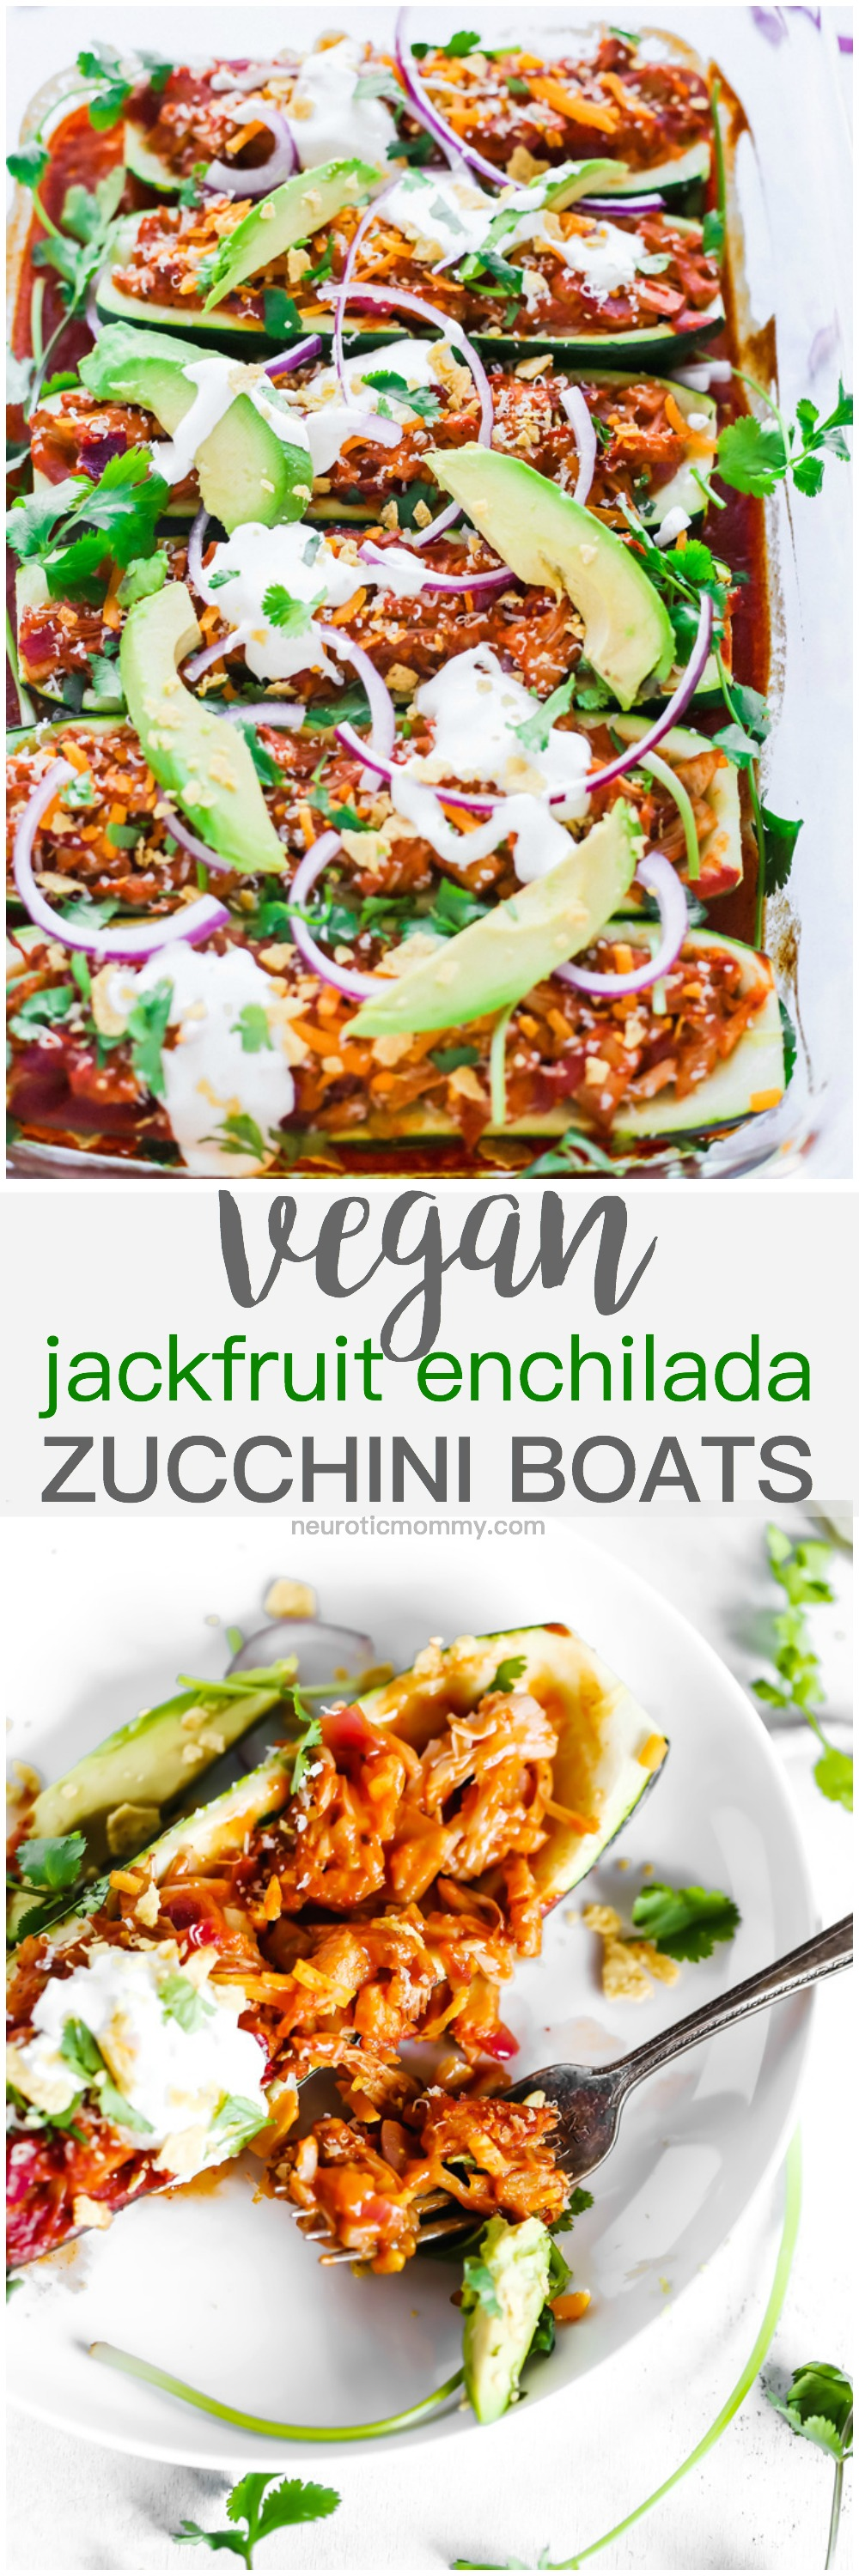 Vegan Jackfruit Enchilada Zucchini Boats - Add this low carb healthy meal to your weekly rotation. Stay on track with this vegan deliciousness without having to sacrifice taste or texture! NeuroticMommy.com #vegan #healthy #veganmealideas